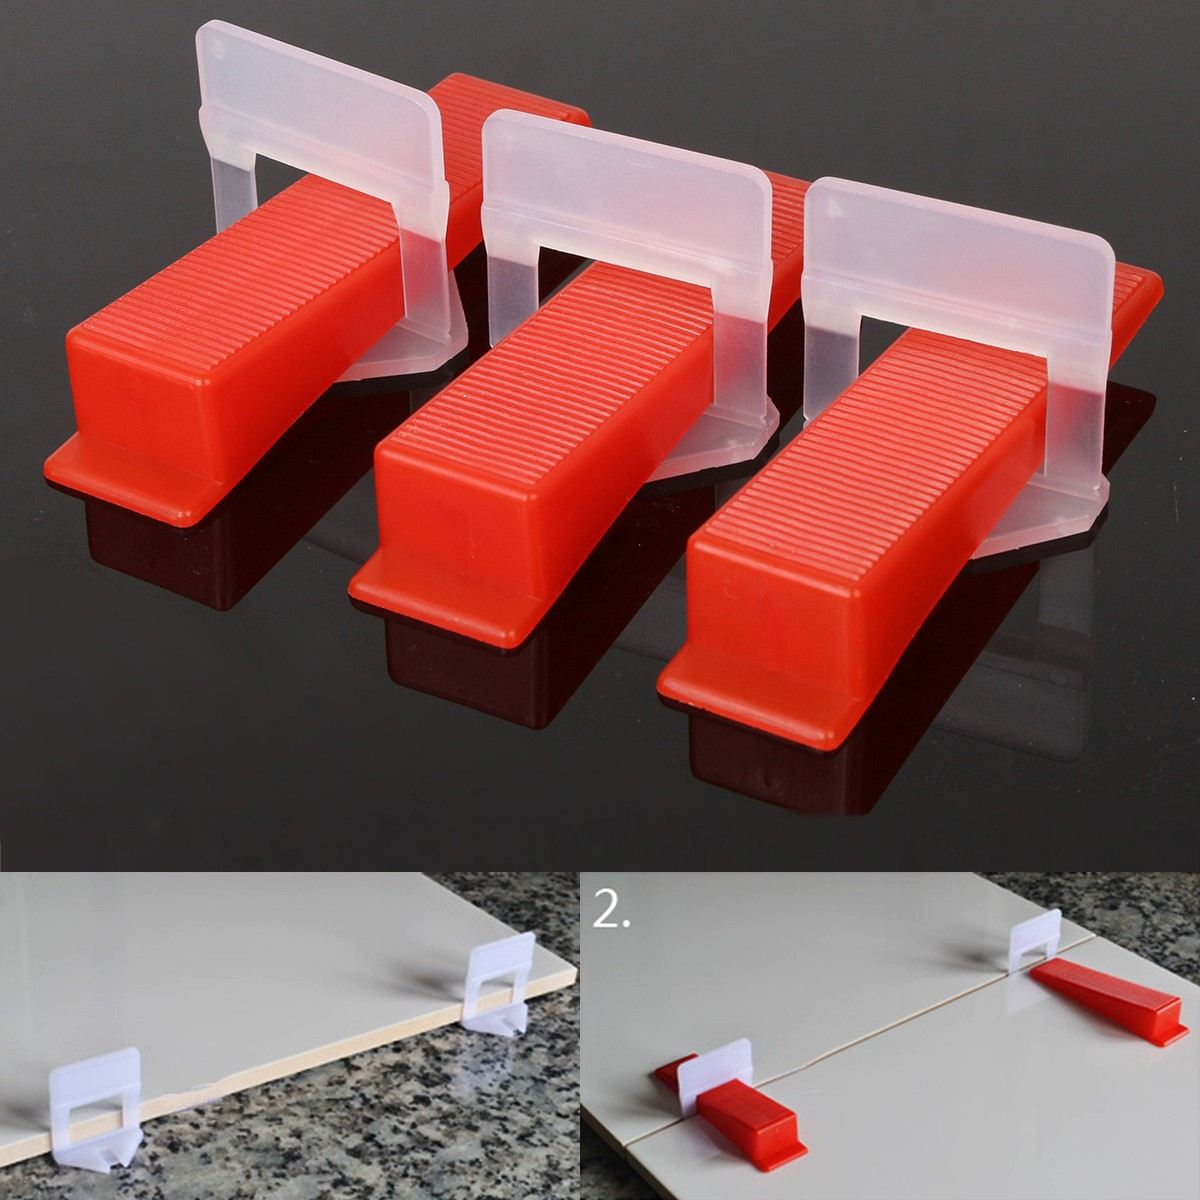 High Quality Tile Leveling System 50x Clips 50 Wedges Plastic Ers Tiling Tools Red White